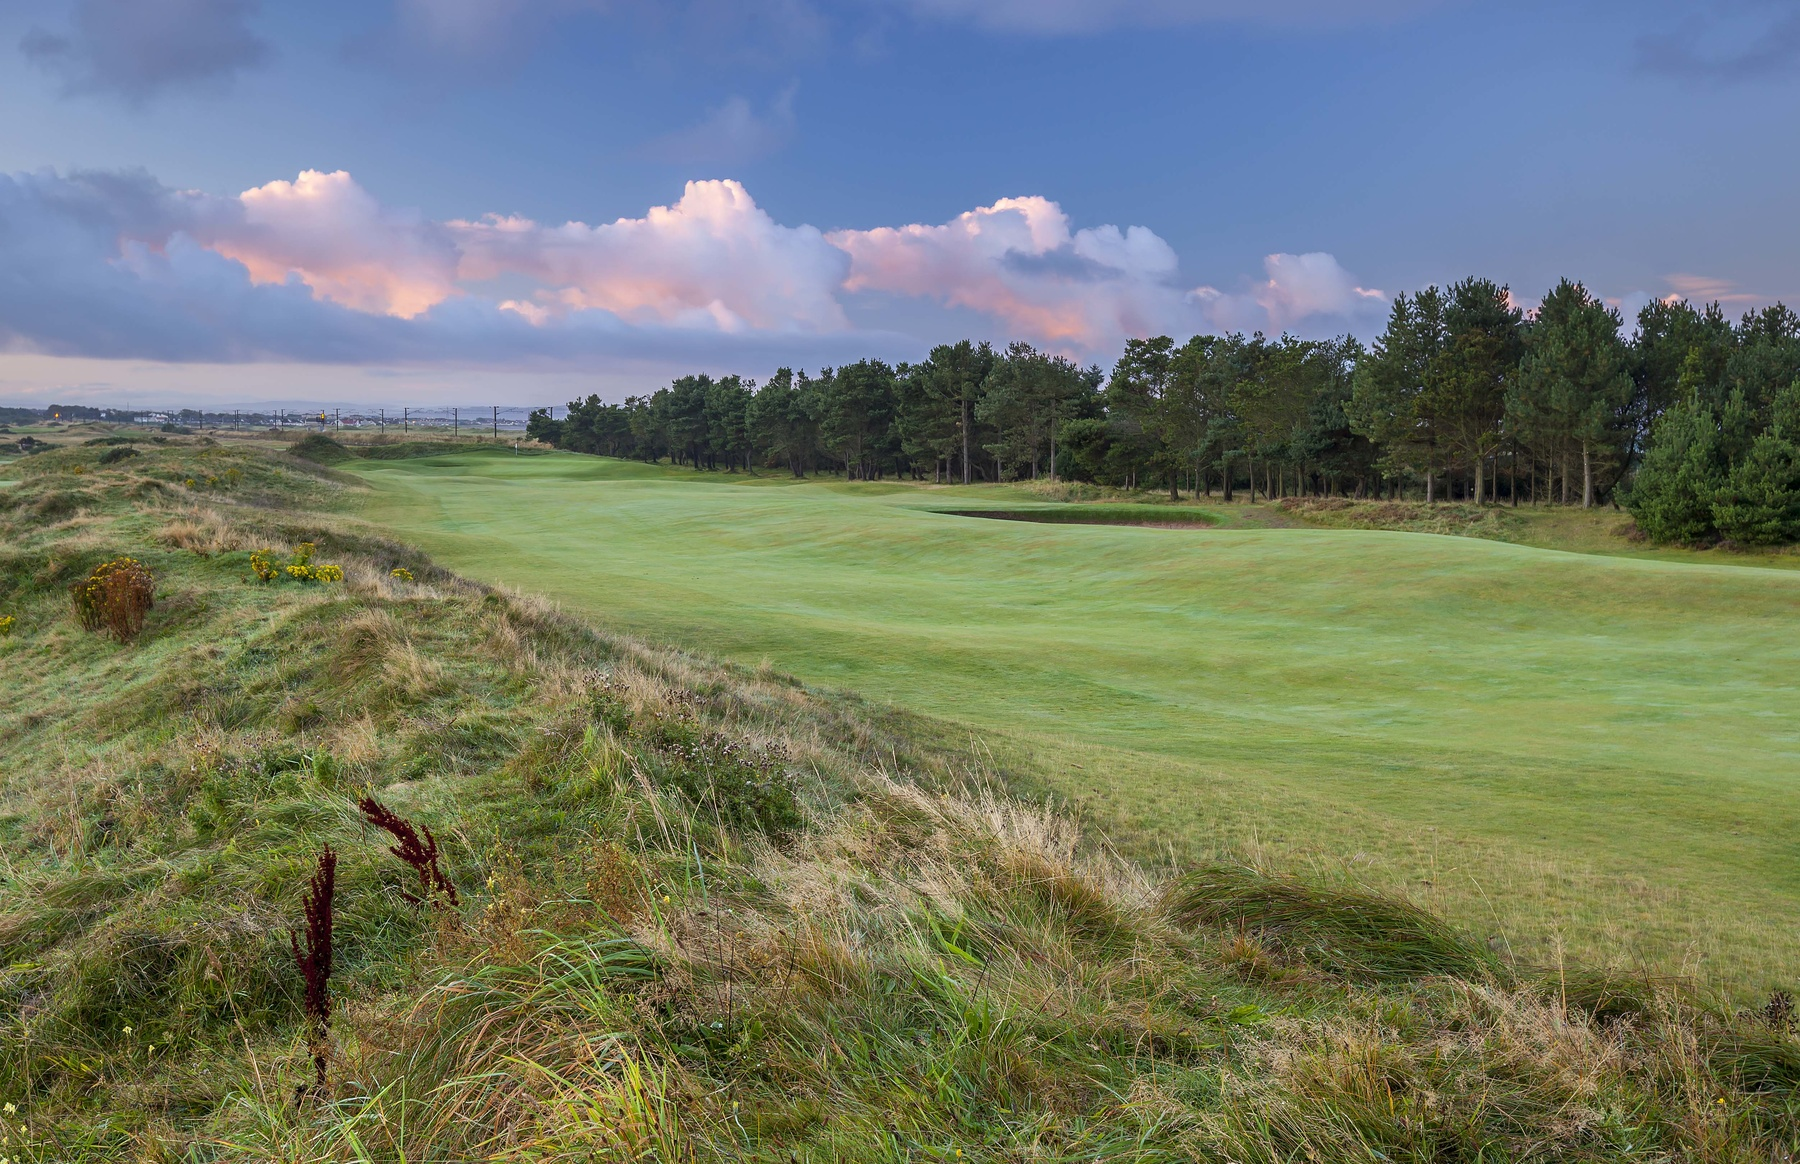 16th hole at Dundonald Links (photo by Mark Alexander)